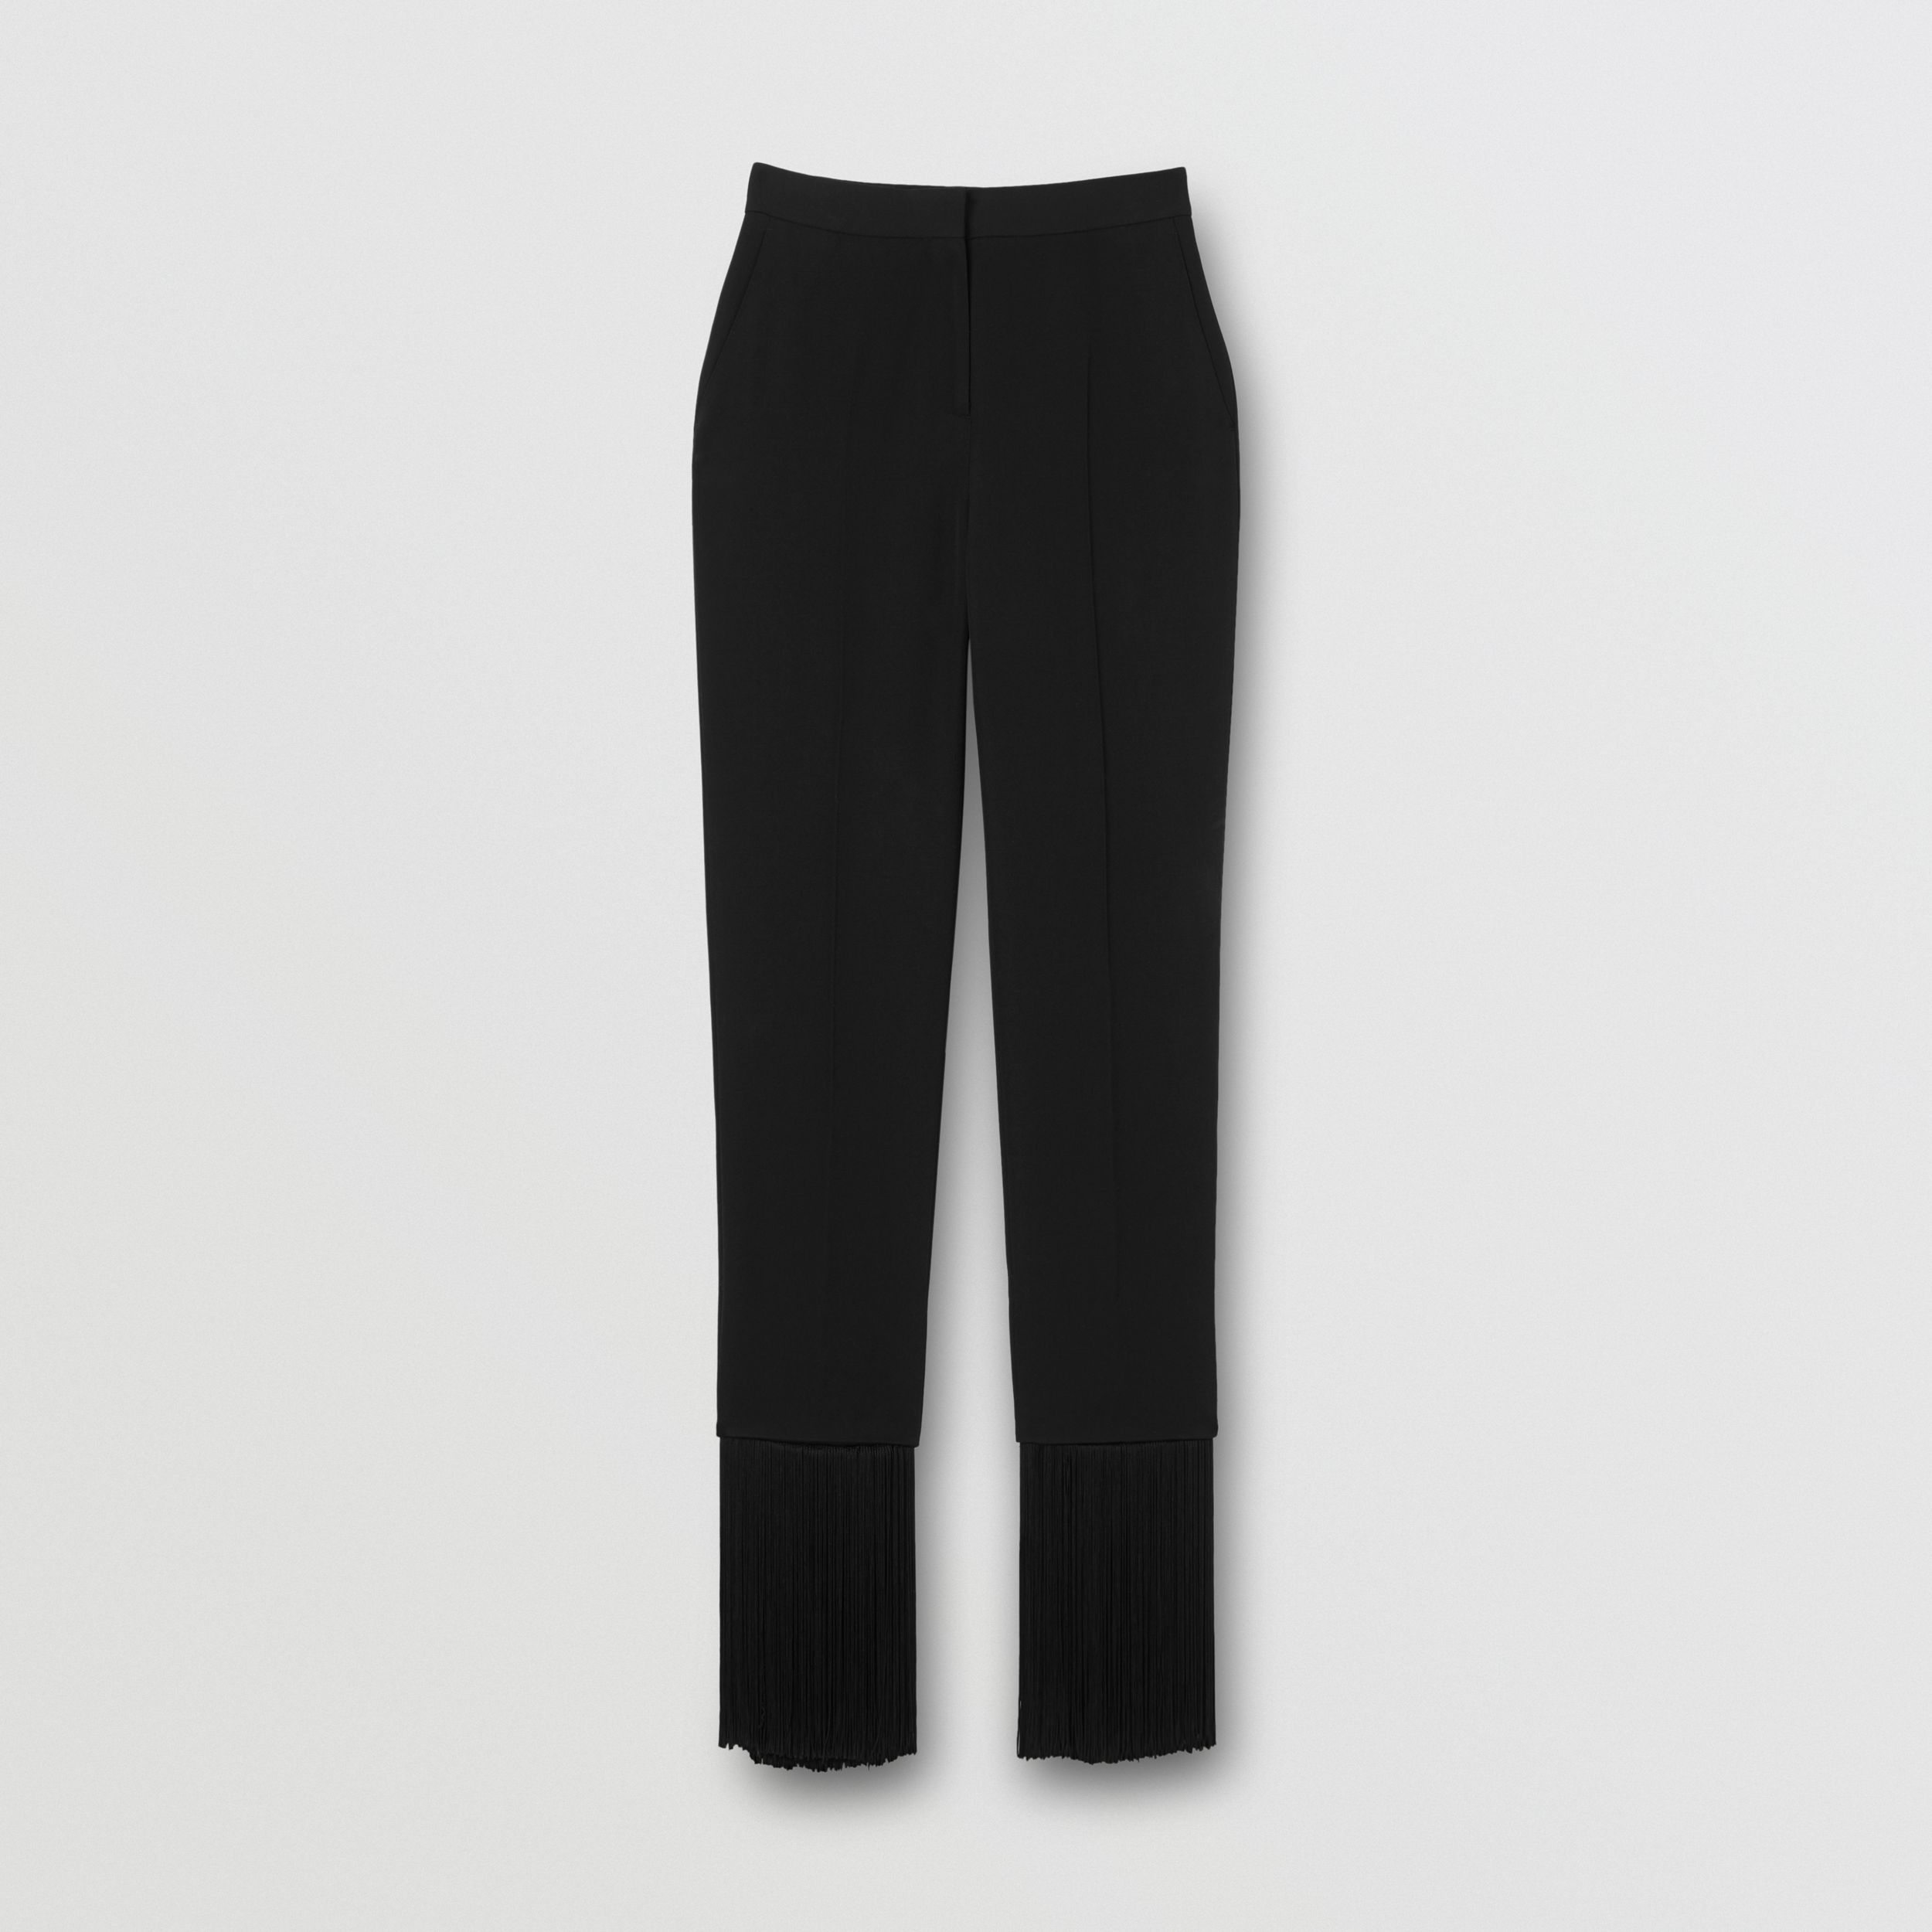 Fringed Grain De Poudre Wool Tailored Trousers in Black - Women | Burberry Hong Kong S.A.R. - 4